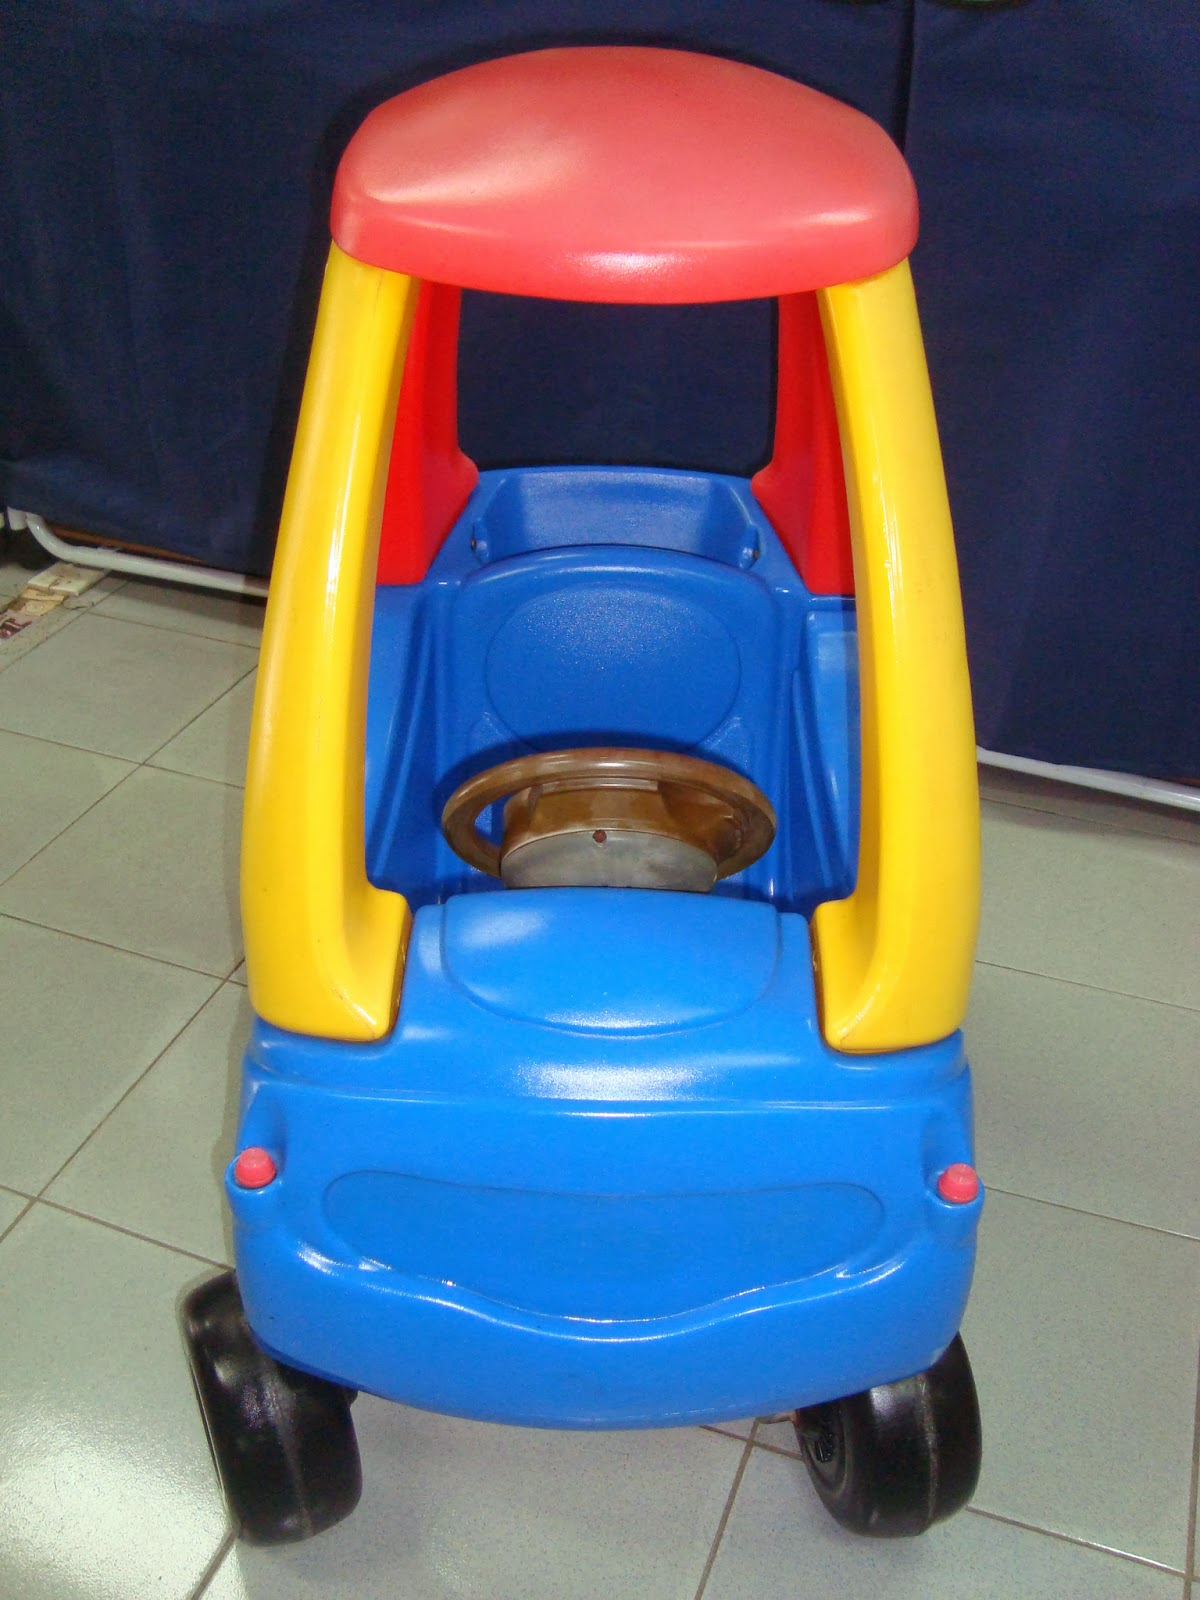 Shop for Little Tikes in Toys by Brand. Buy products such as Little Tikes Deluxe 2-in-1 Cozy Roadster at Walmart and save.